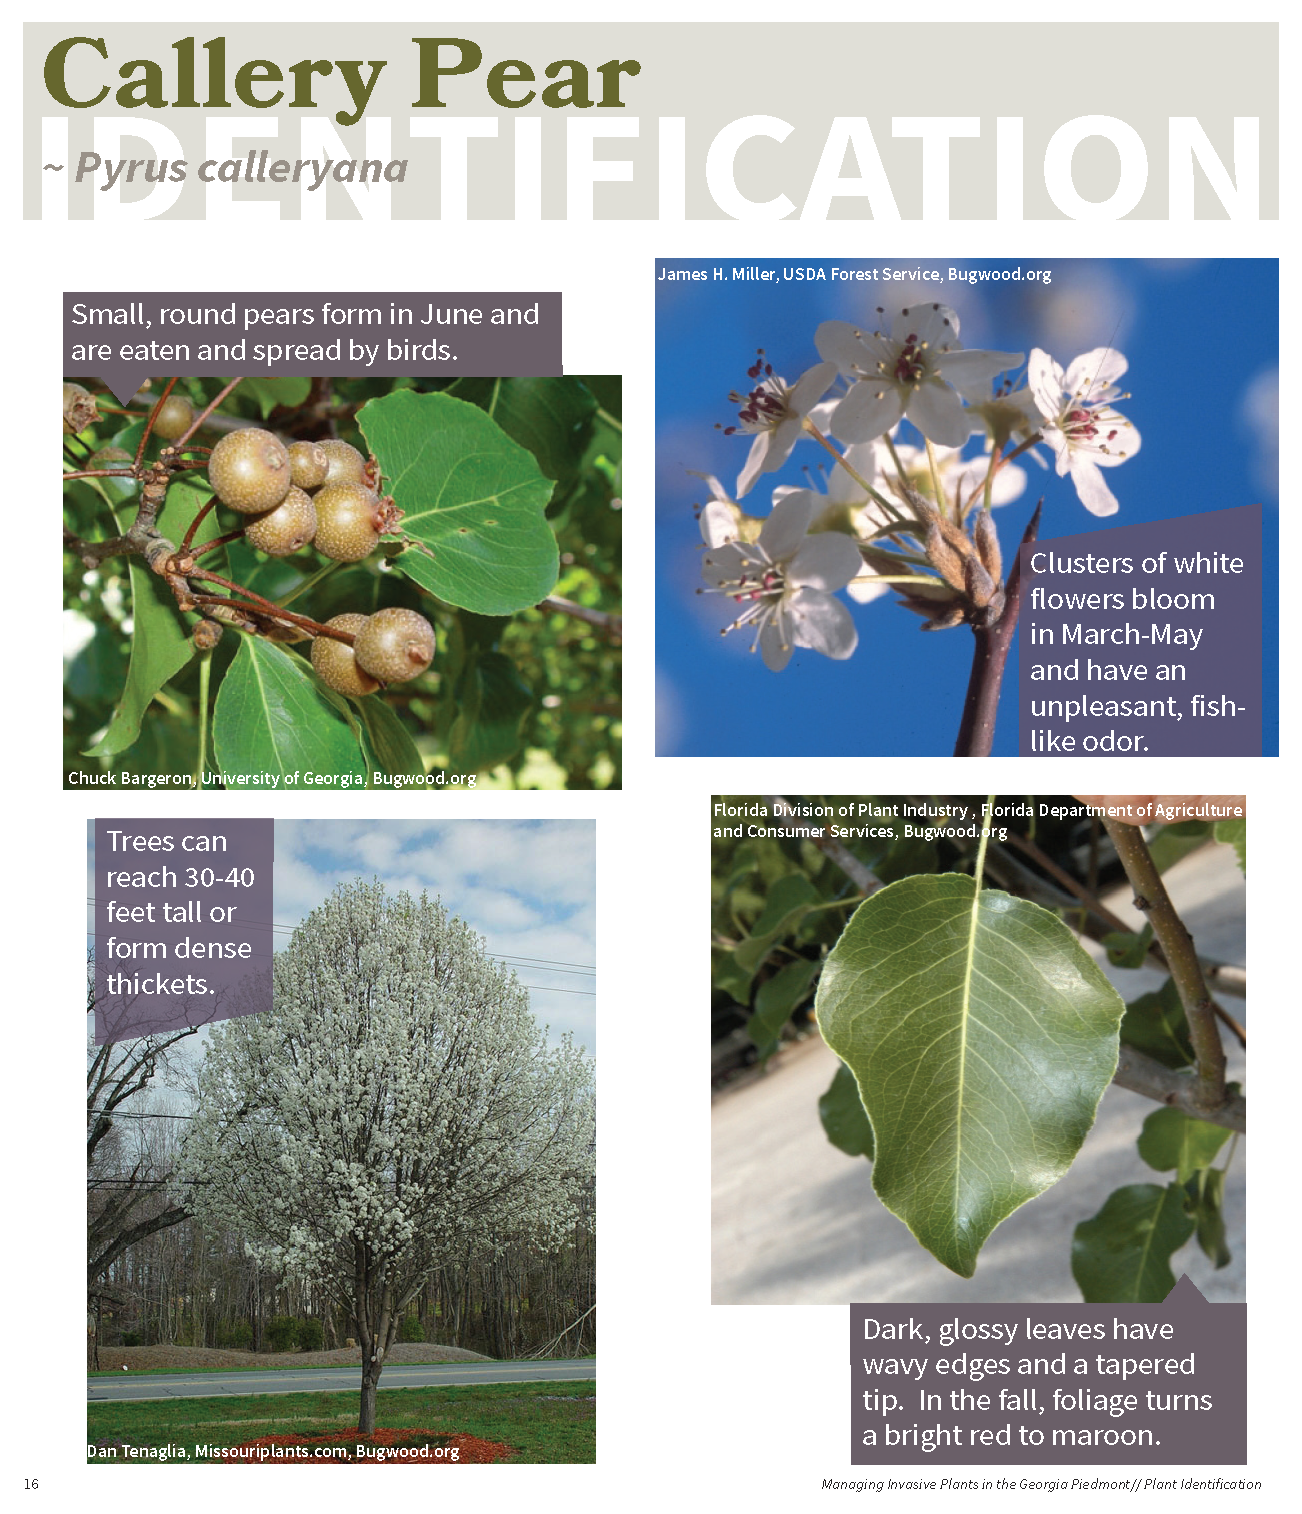 Managing Invasive Plants in the GA Piedmont for web_Page_15